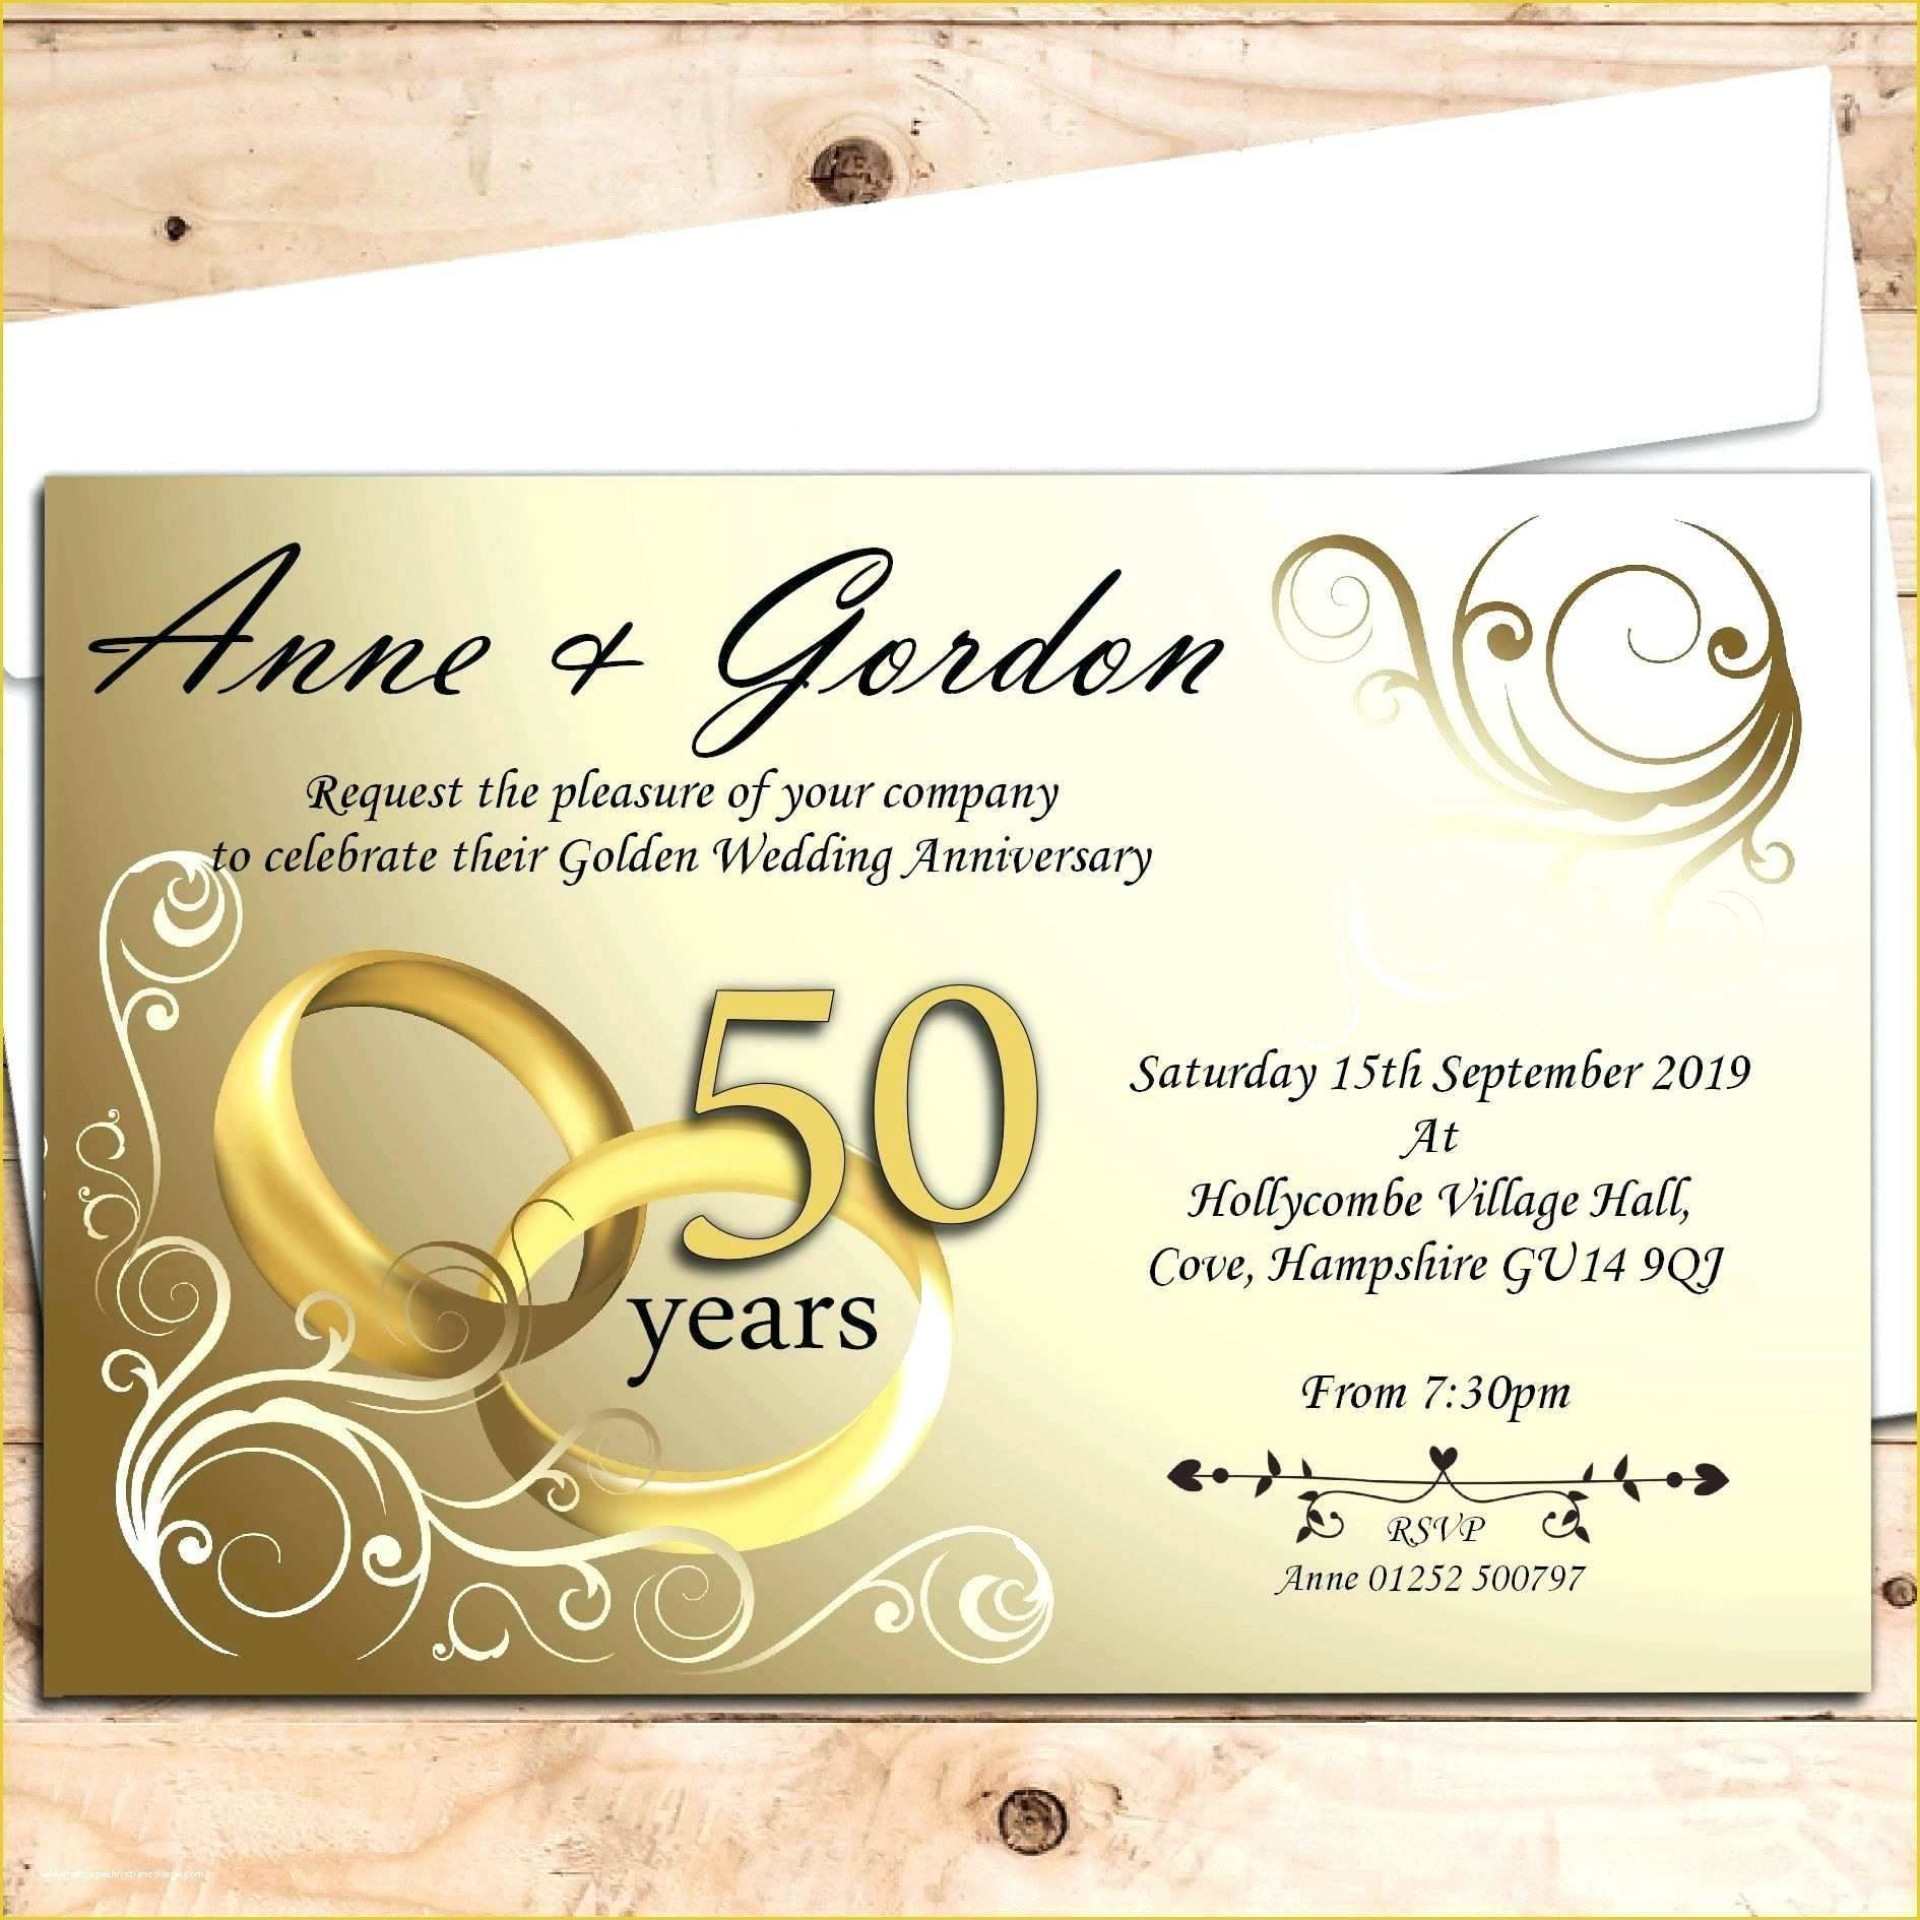 007 Beautiful Free 50th Anniversary Invitation Template For Word Highest Quality 1920